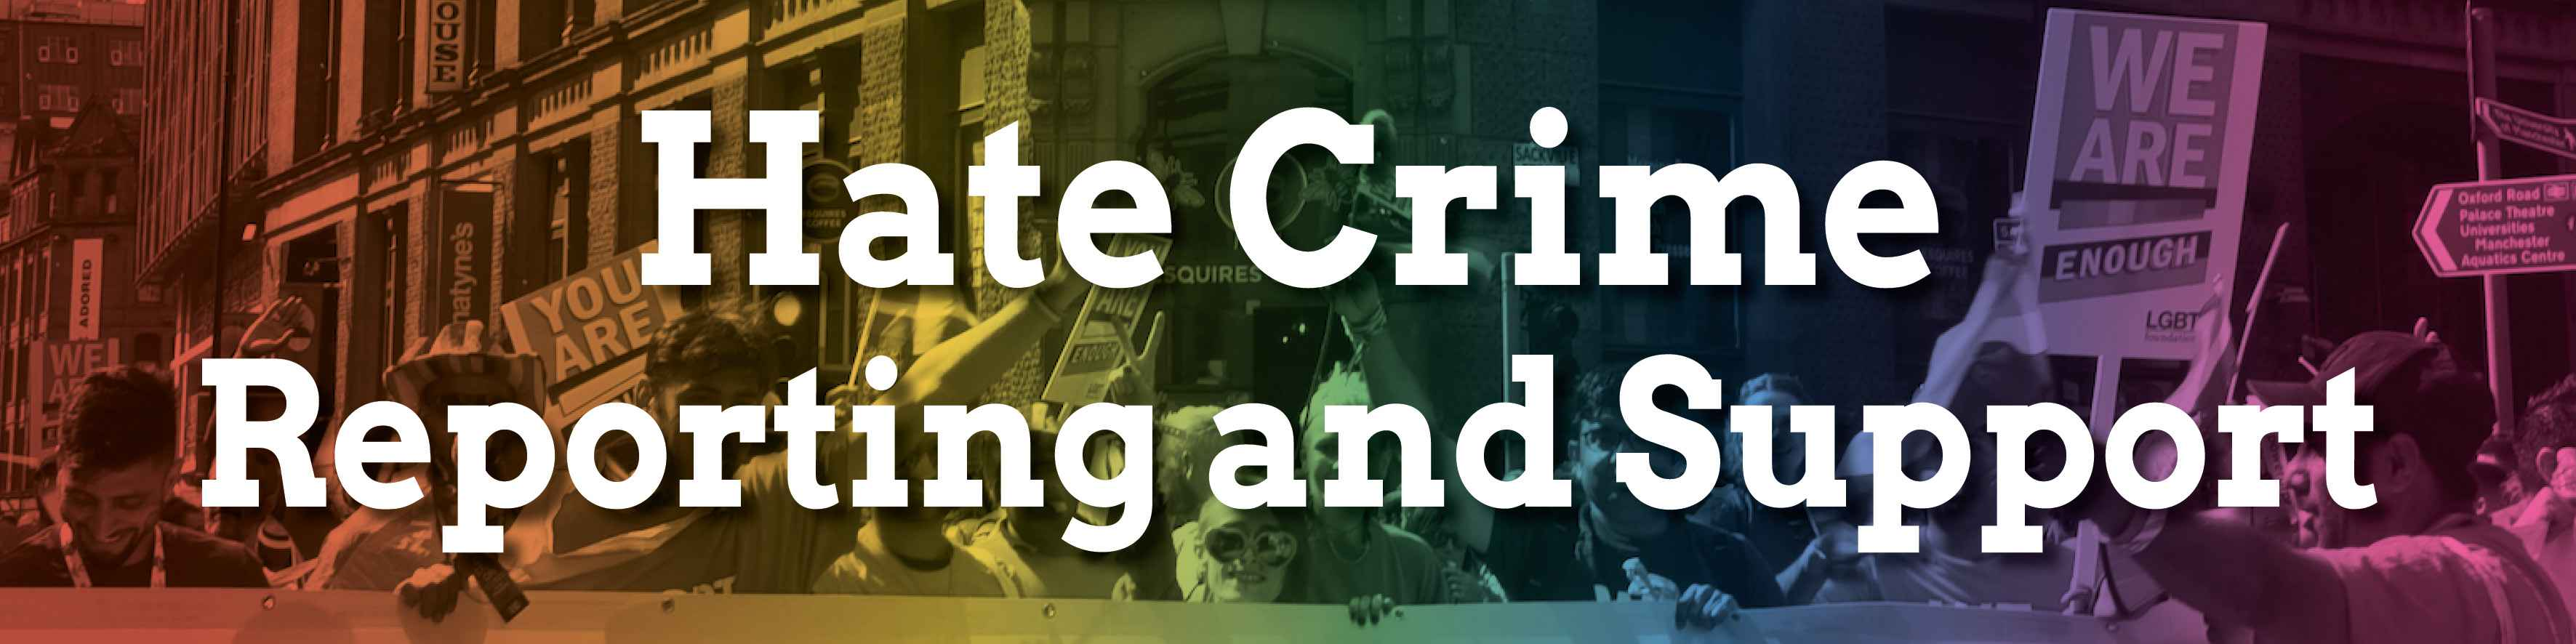 Hate crime reporting and support